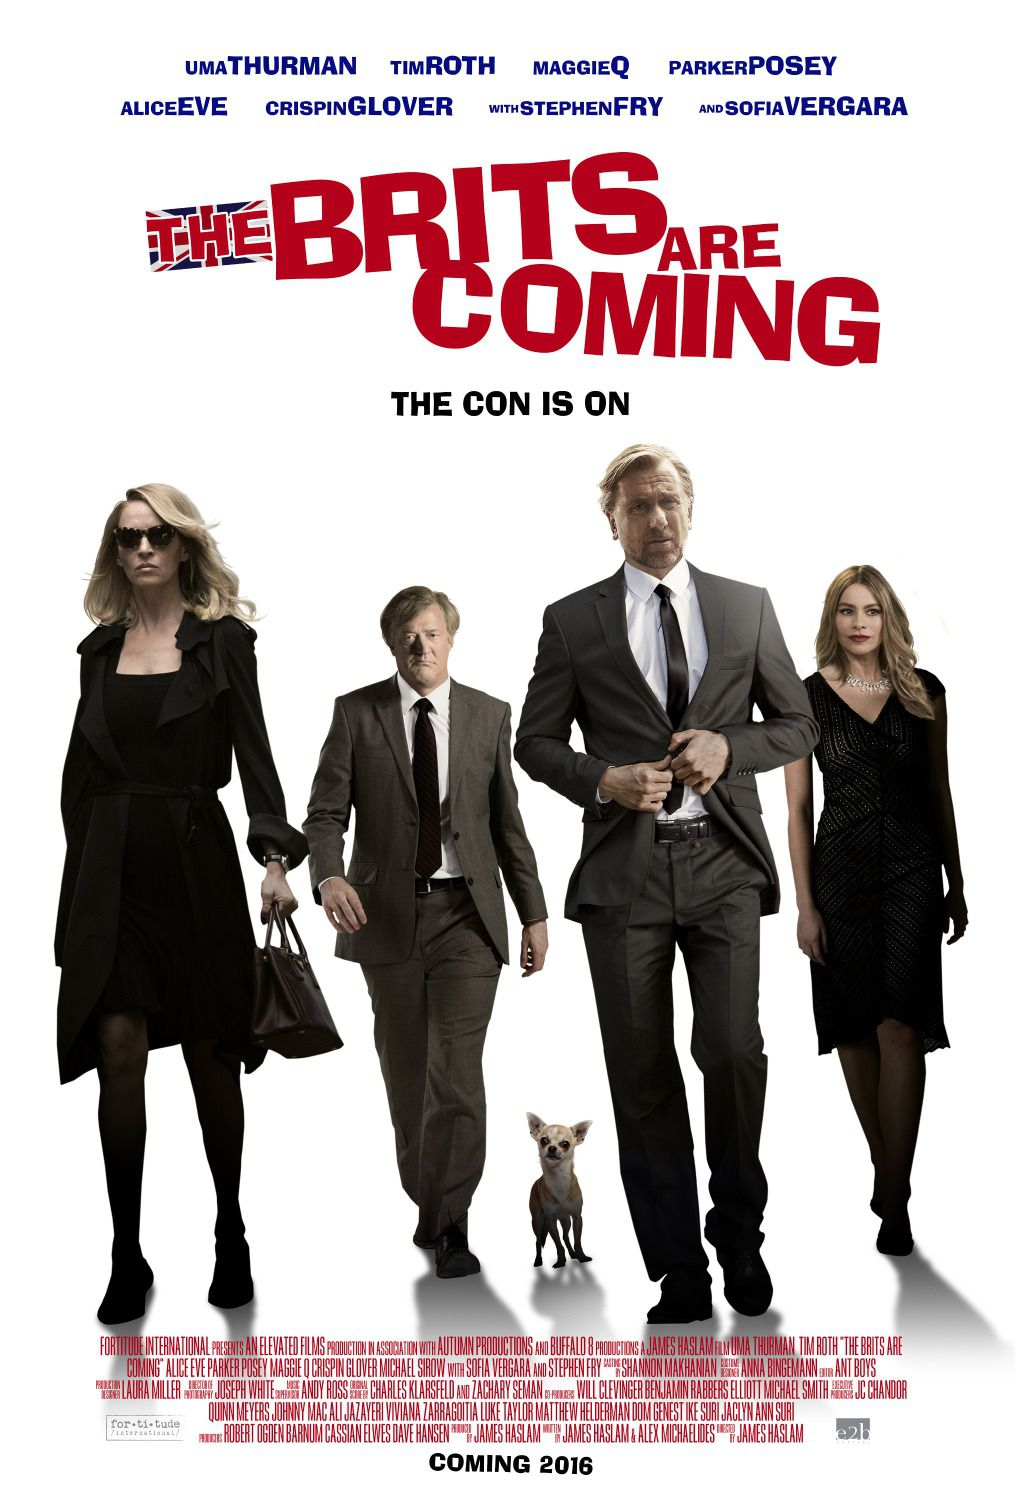 The Brits are Coming - Cast: Uma Thurman, Tim Roth, Maggie Q, Parker Posey, Alice Eve, Crispin Glover, Stephen Fry, Sofia Vergara - poster 2018